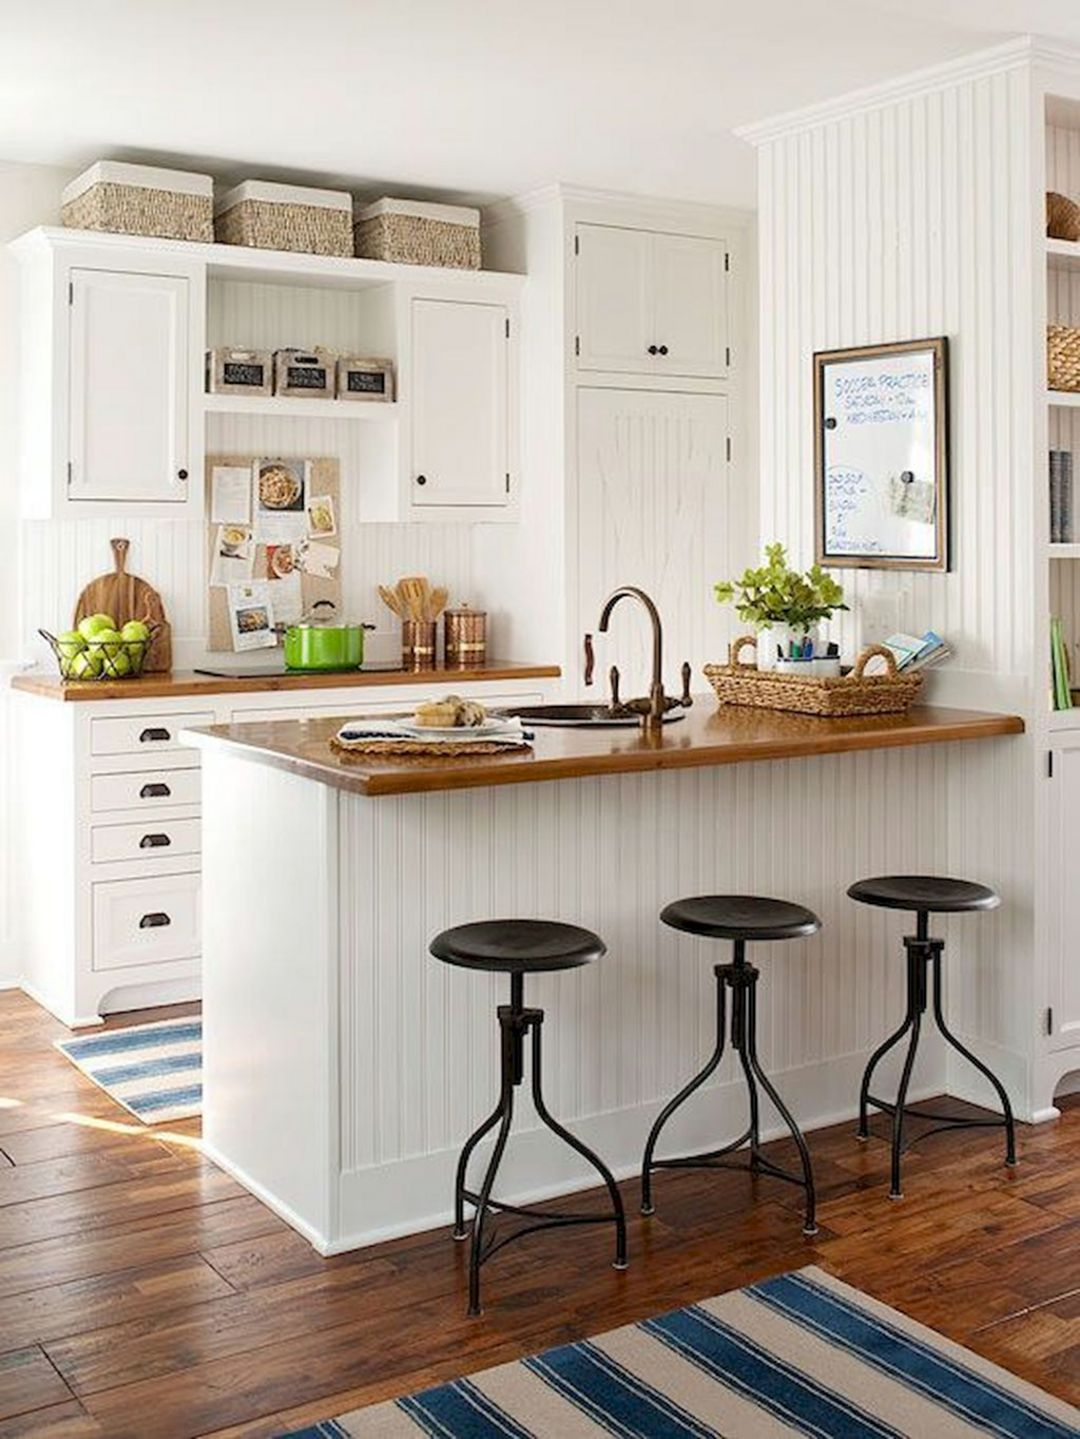 7 amazing small kitchen design idea for limited home space